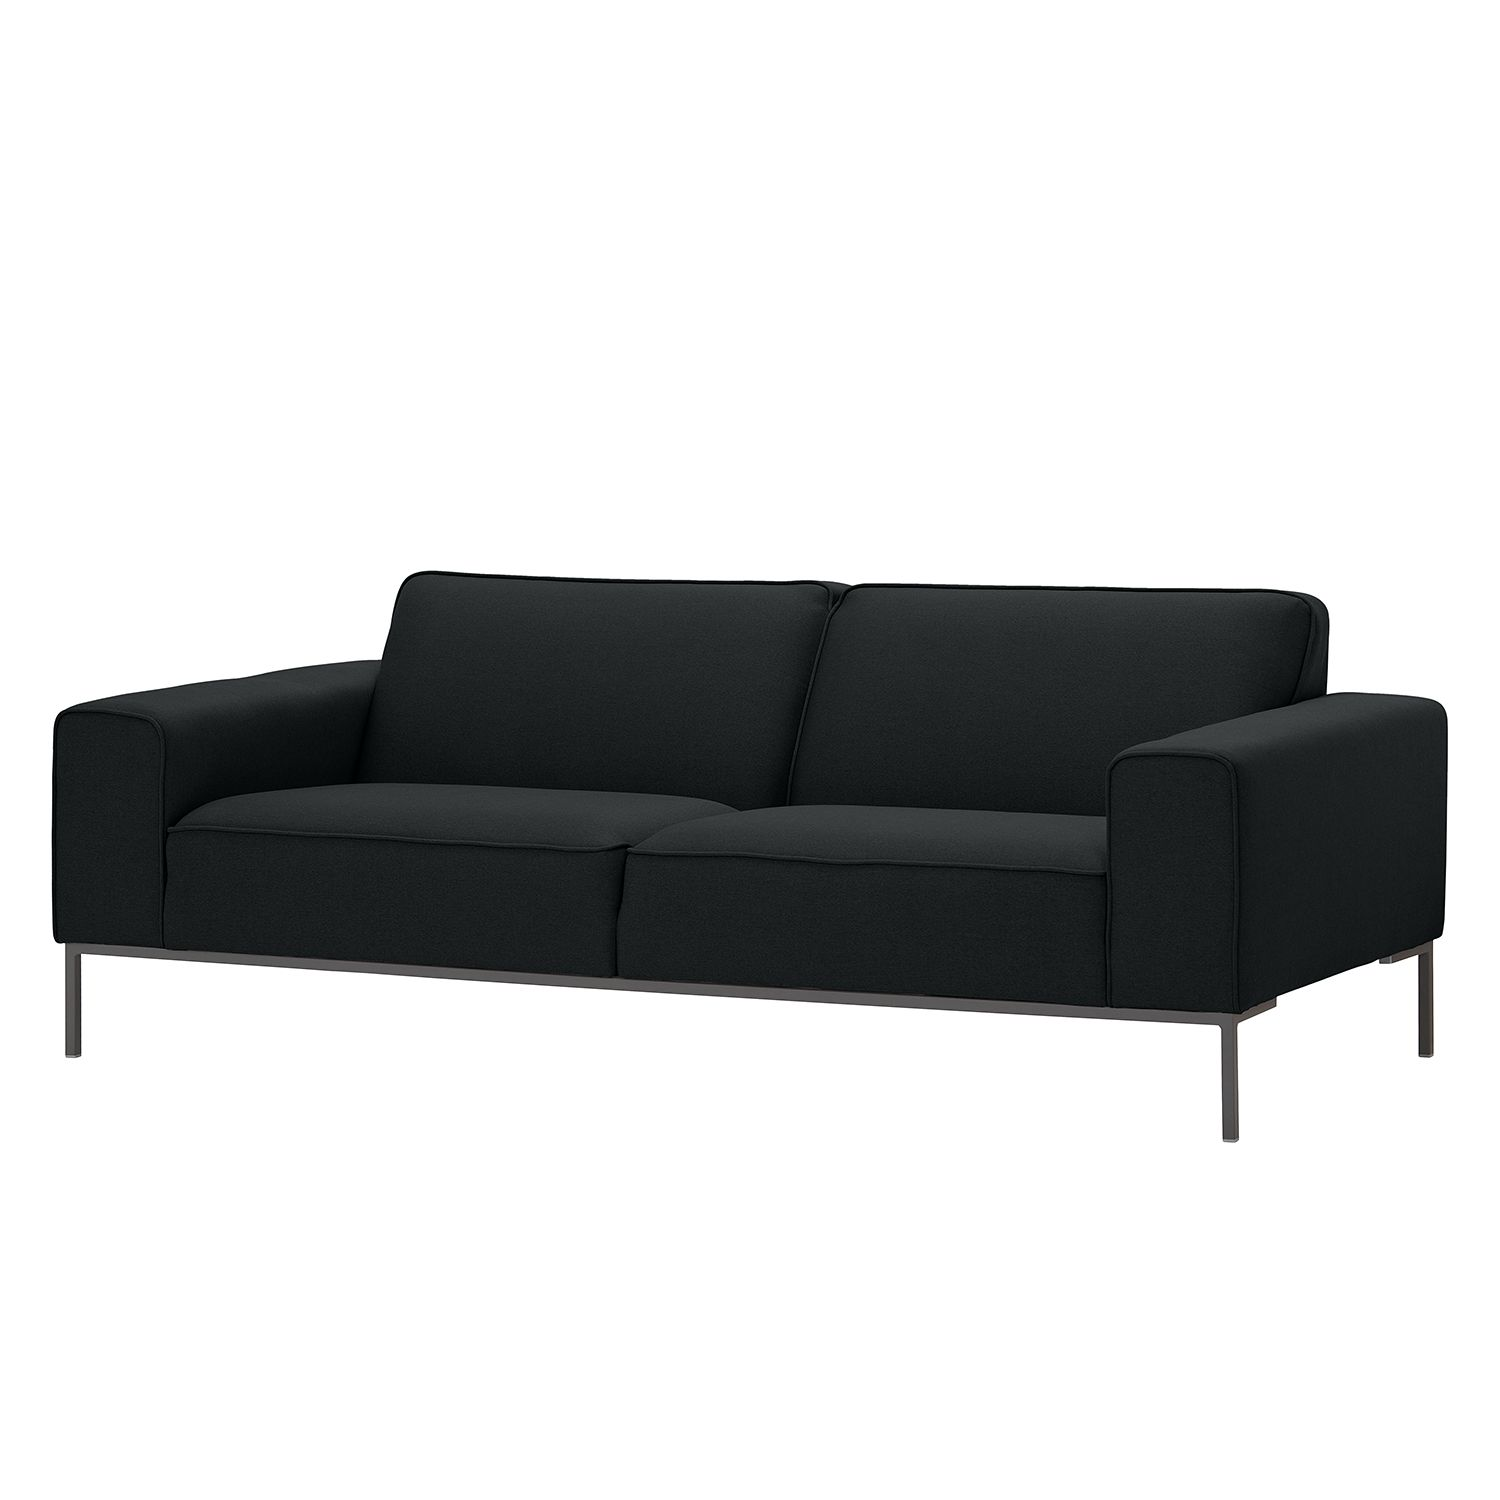 sofa ampio 3 sitzer webstoff grau stoff floreana. Black Bedroom Furniture Sets. Home Design Ideas